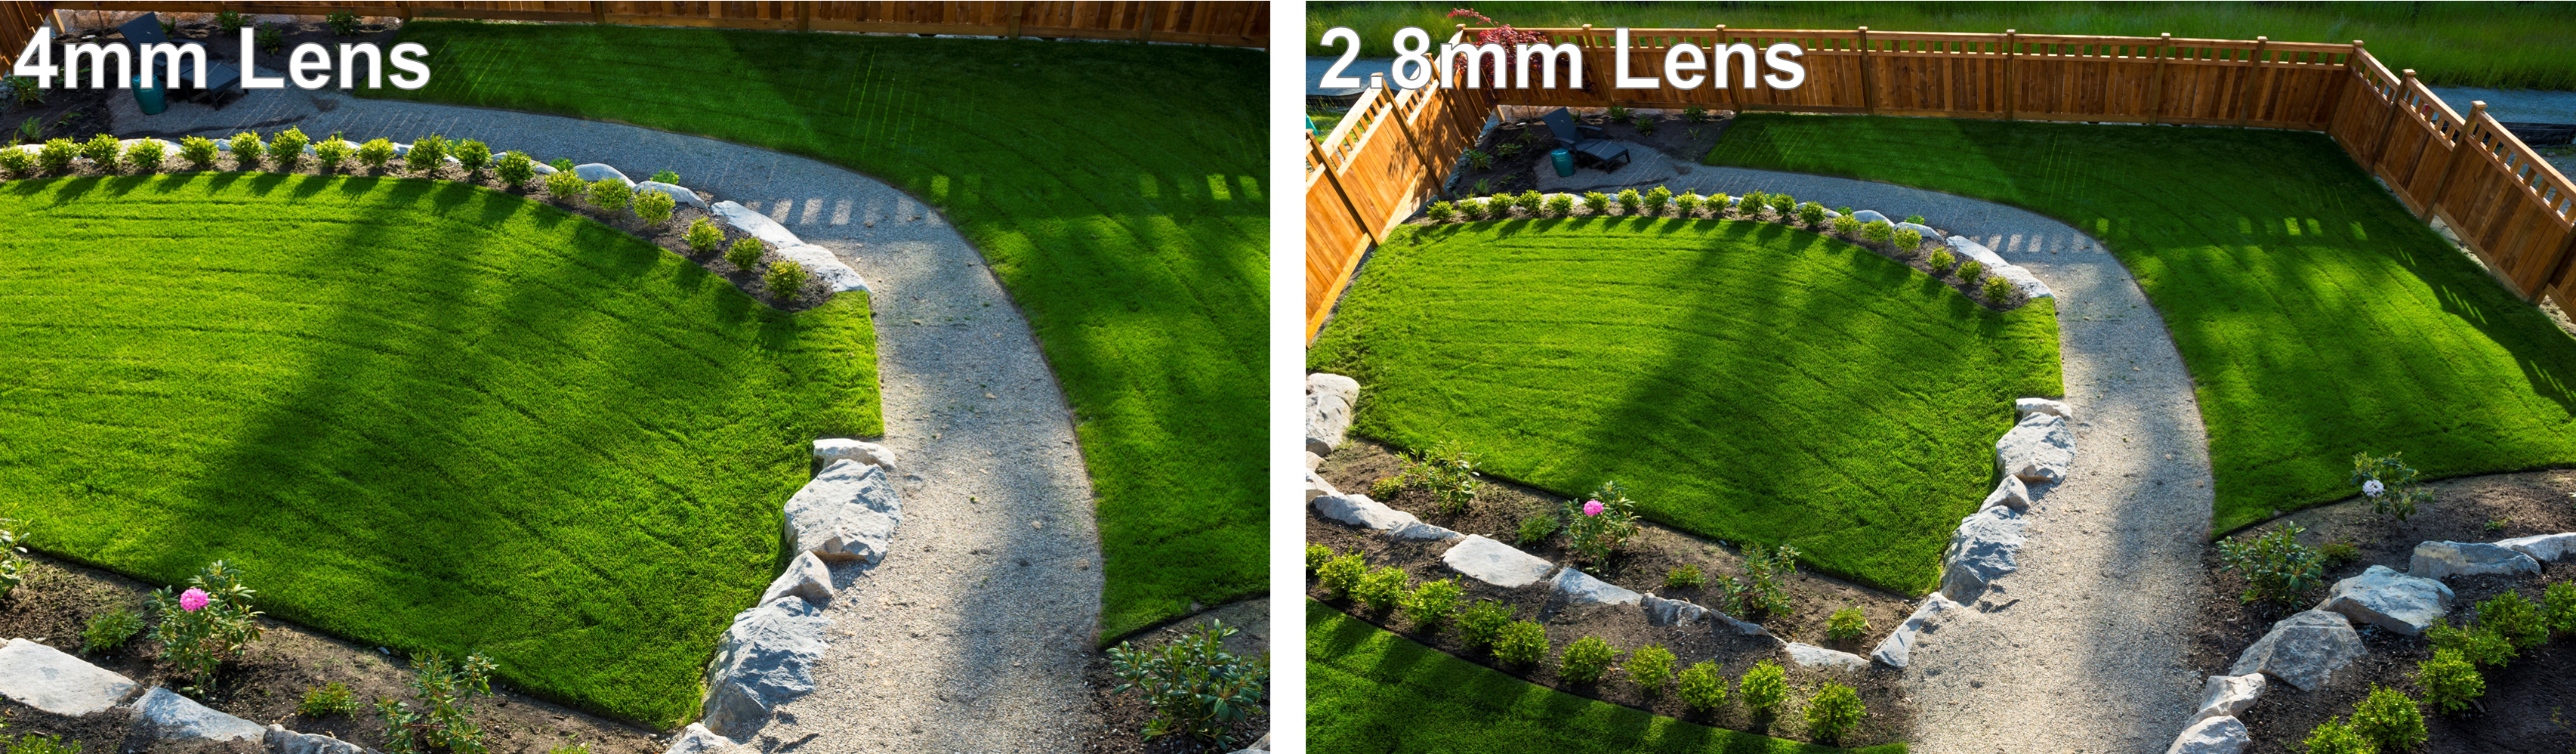 Camera Focal Length Comparison (Backyard)